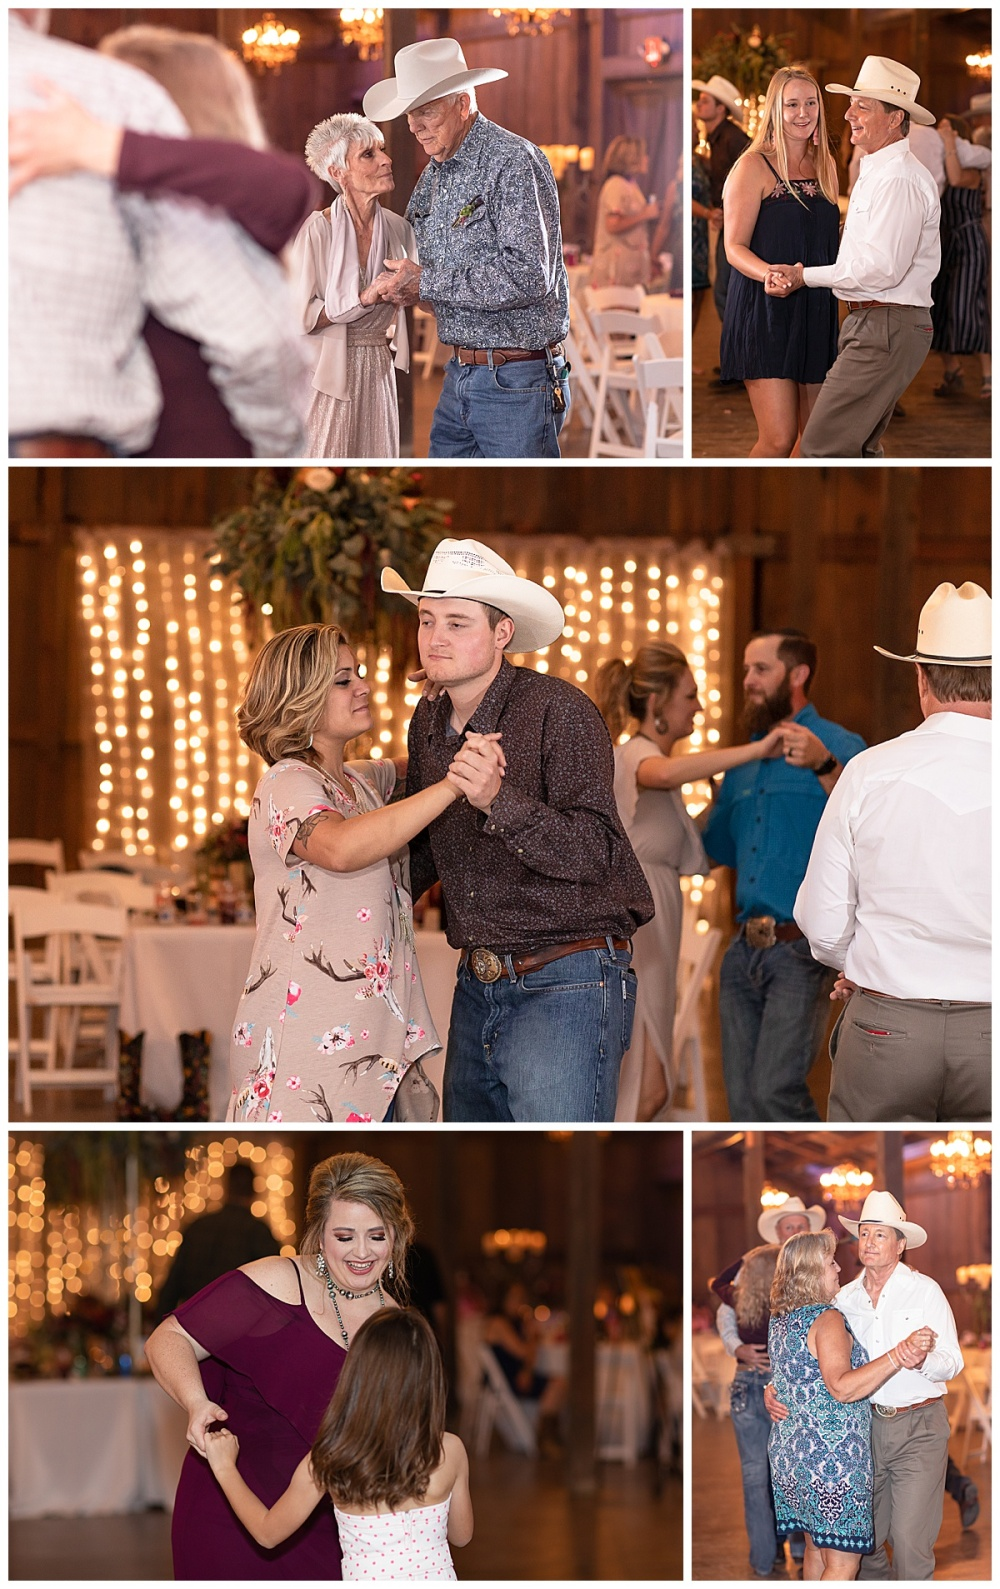 Eagle-Dancer-Ranch-Boerne-Texas-Wedding-Party-Barn-Carly-Barton-Photography_0075.jpg